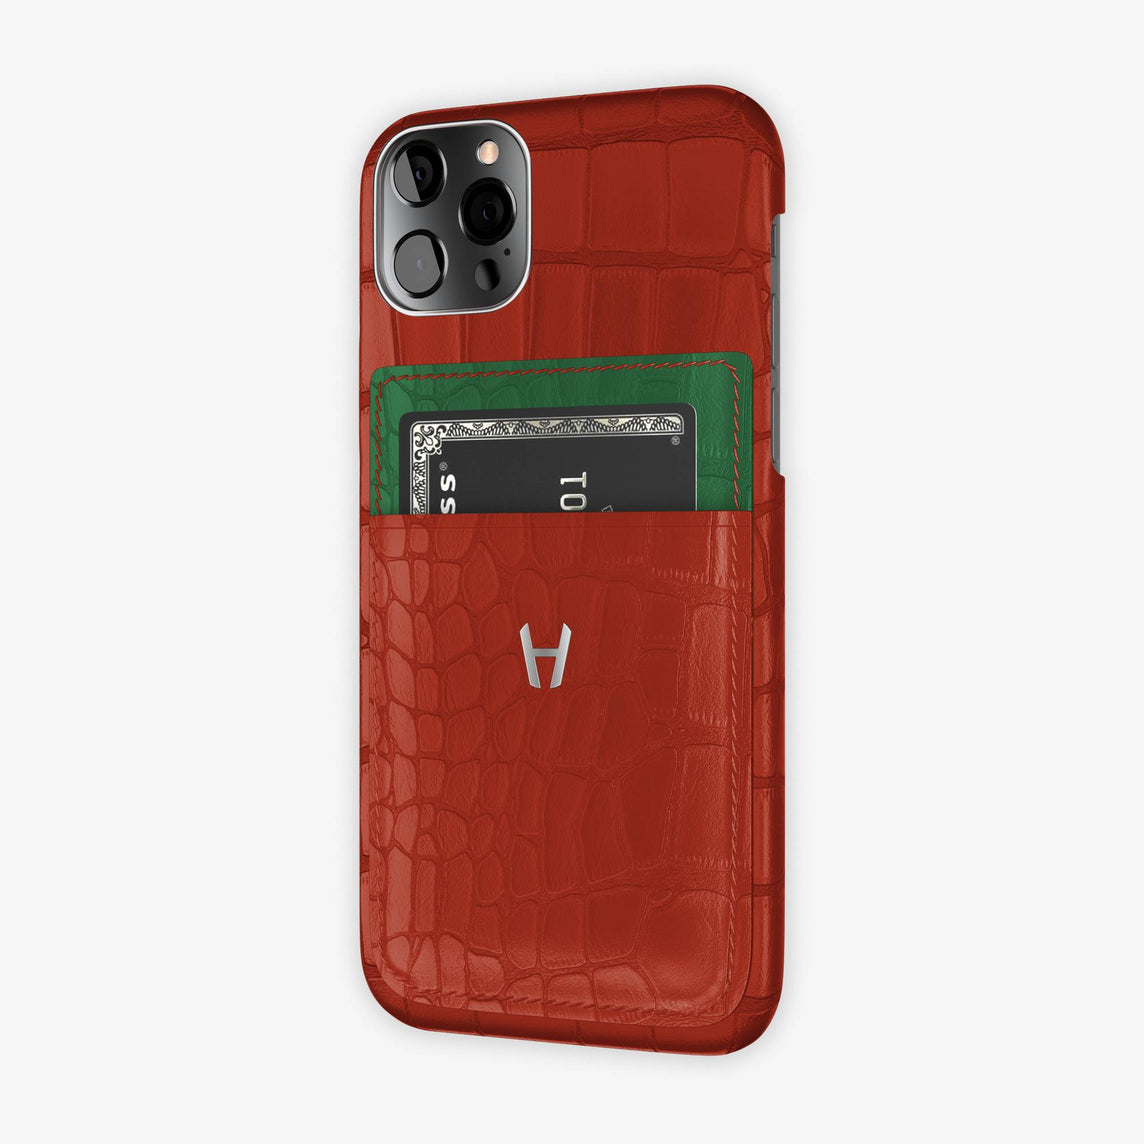 iPhone 12 & 12 Pro | Red/Green Emerald - Stainless Steel